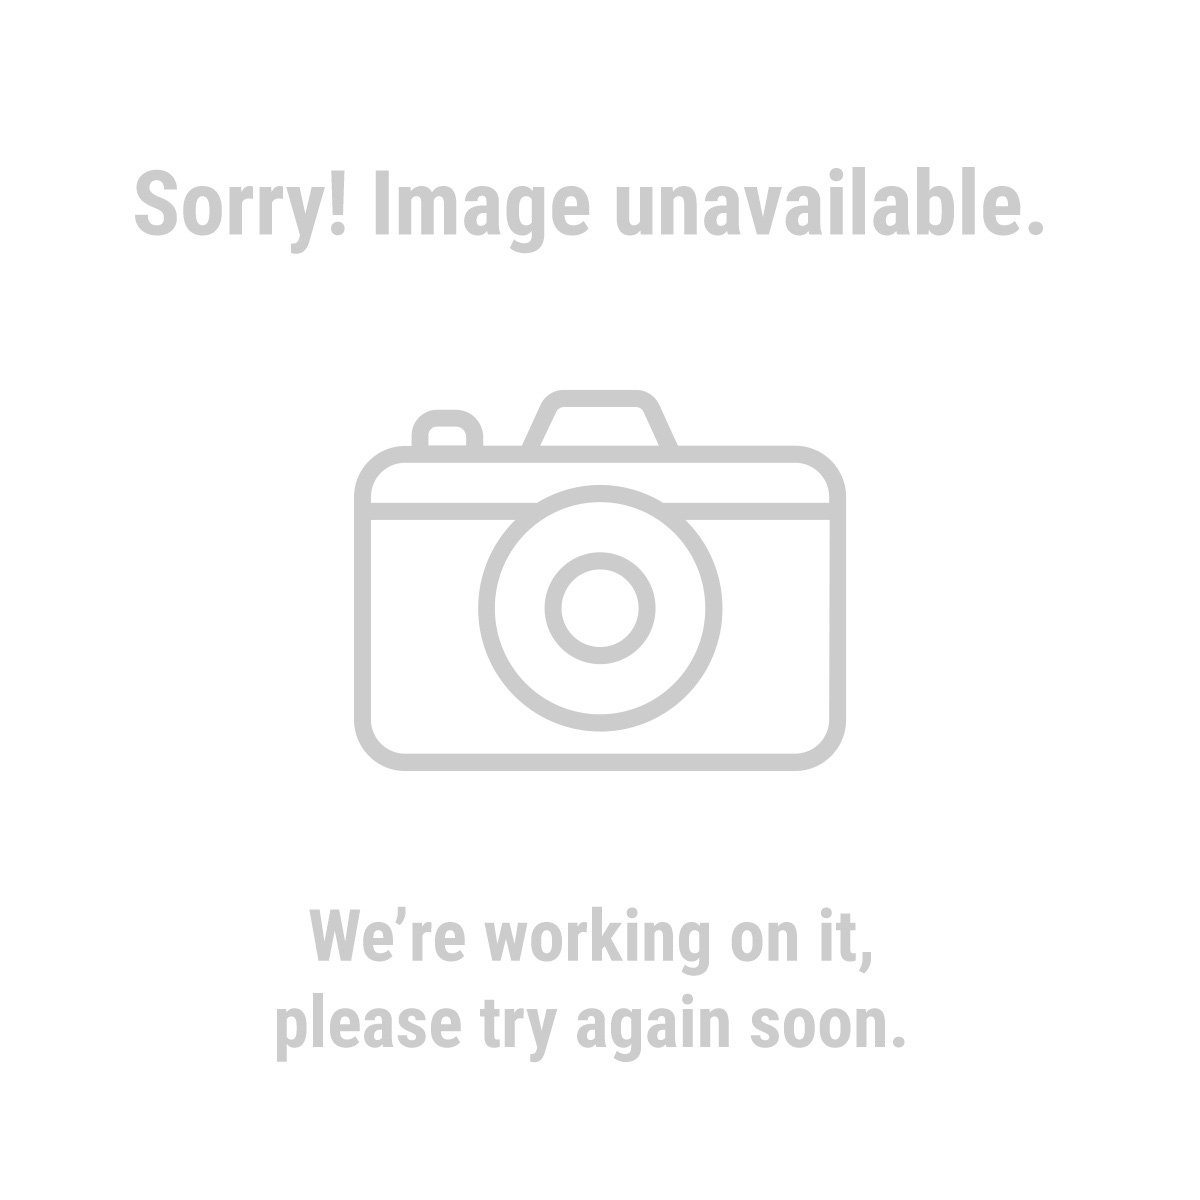 HFT® 69127 11 ft. 4 in. x 18 ft. 6 in. Silver/Heavy Duty Reflective All Purpose/Weather Resistant Tarp